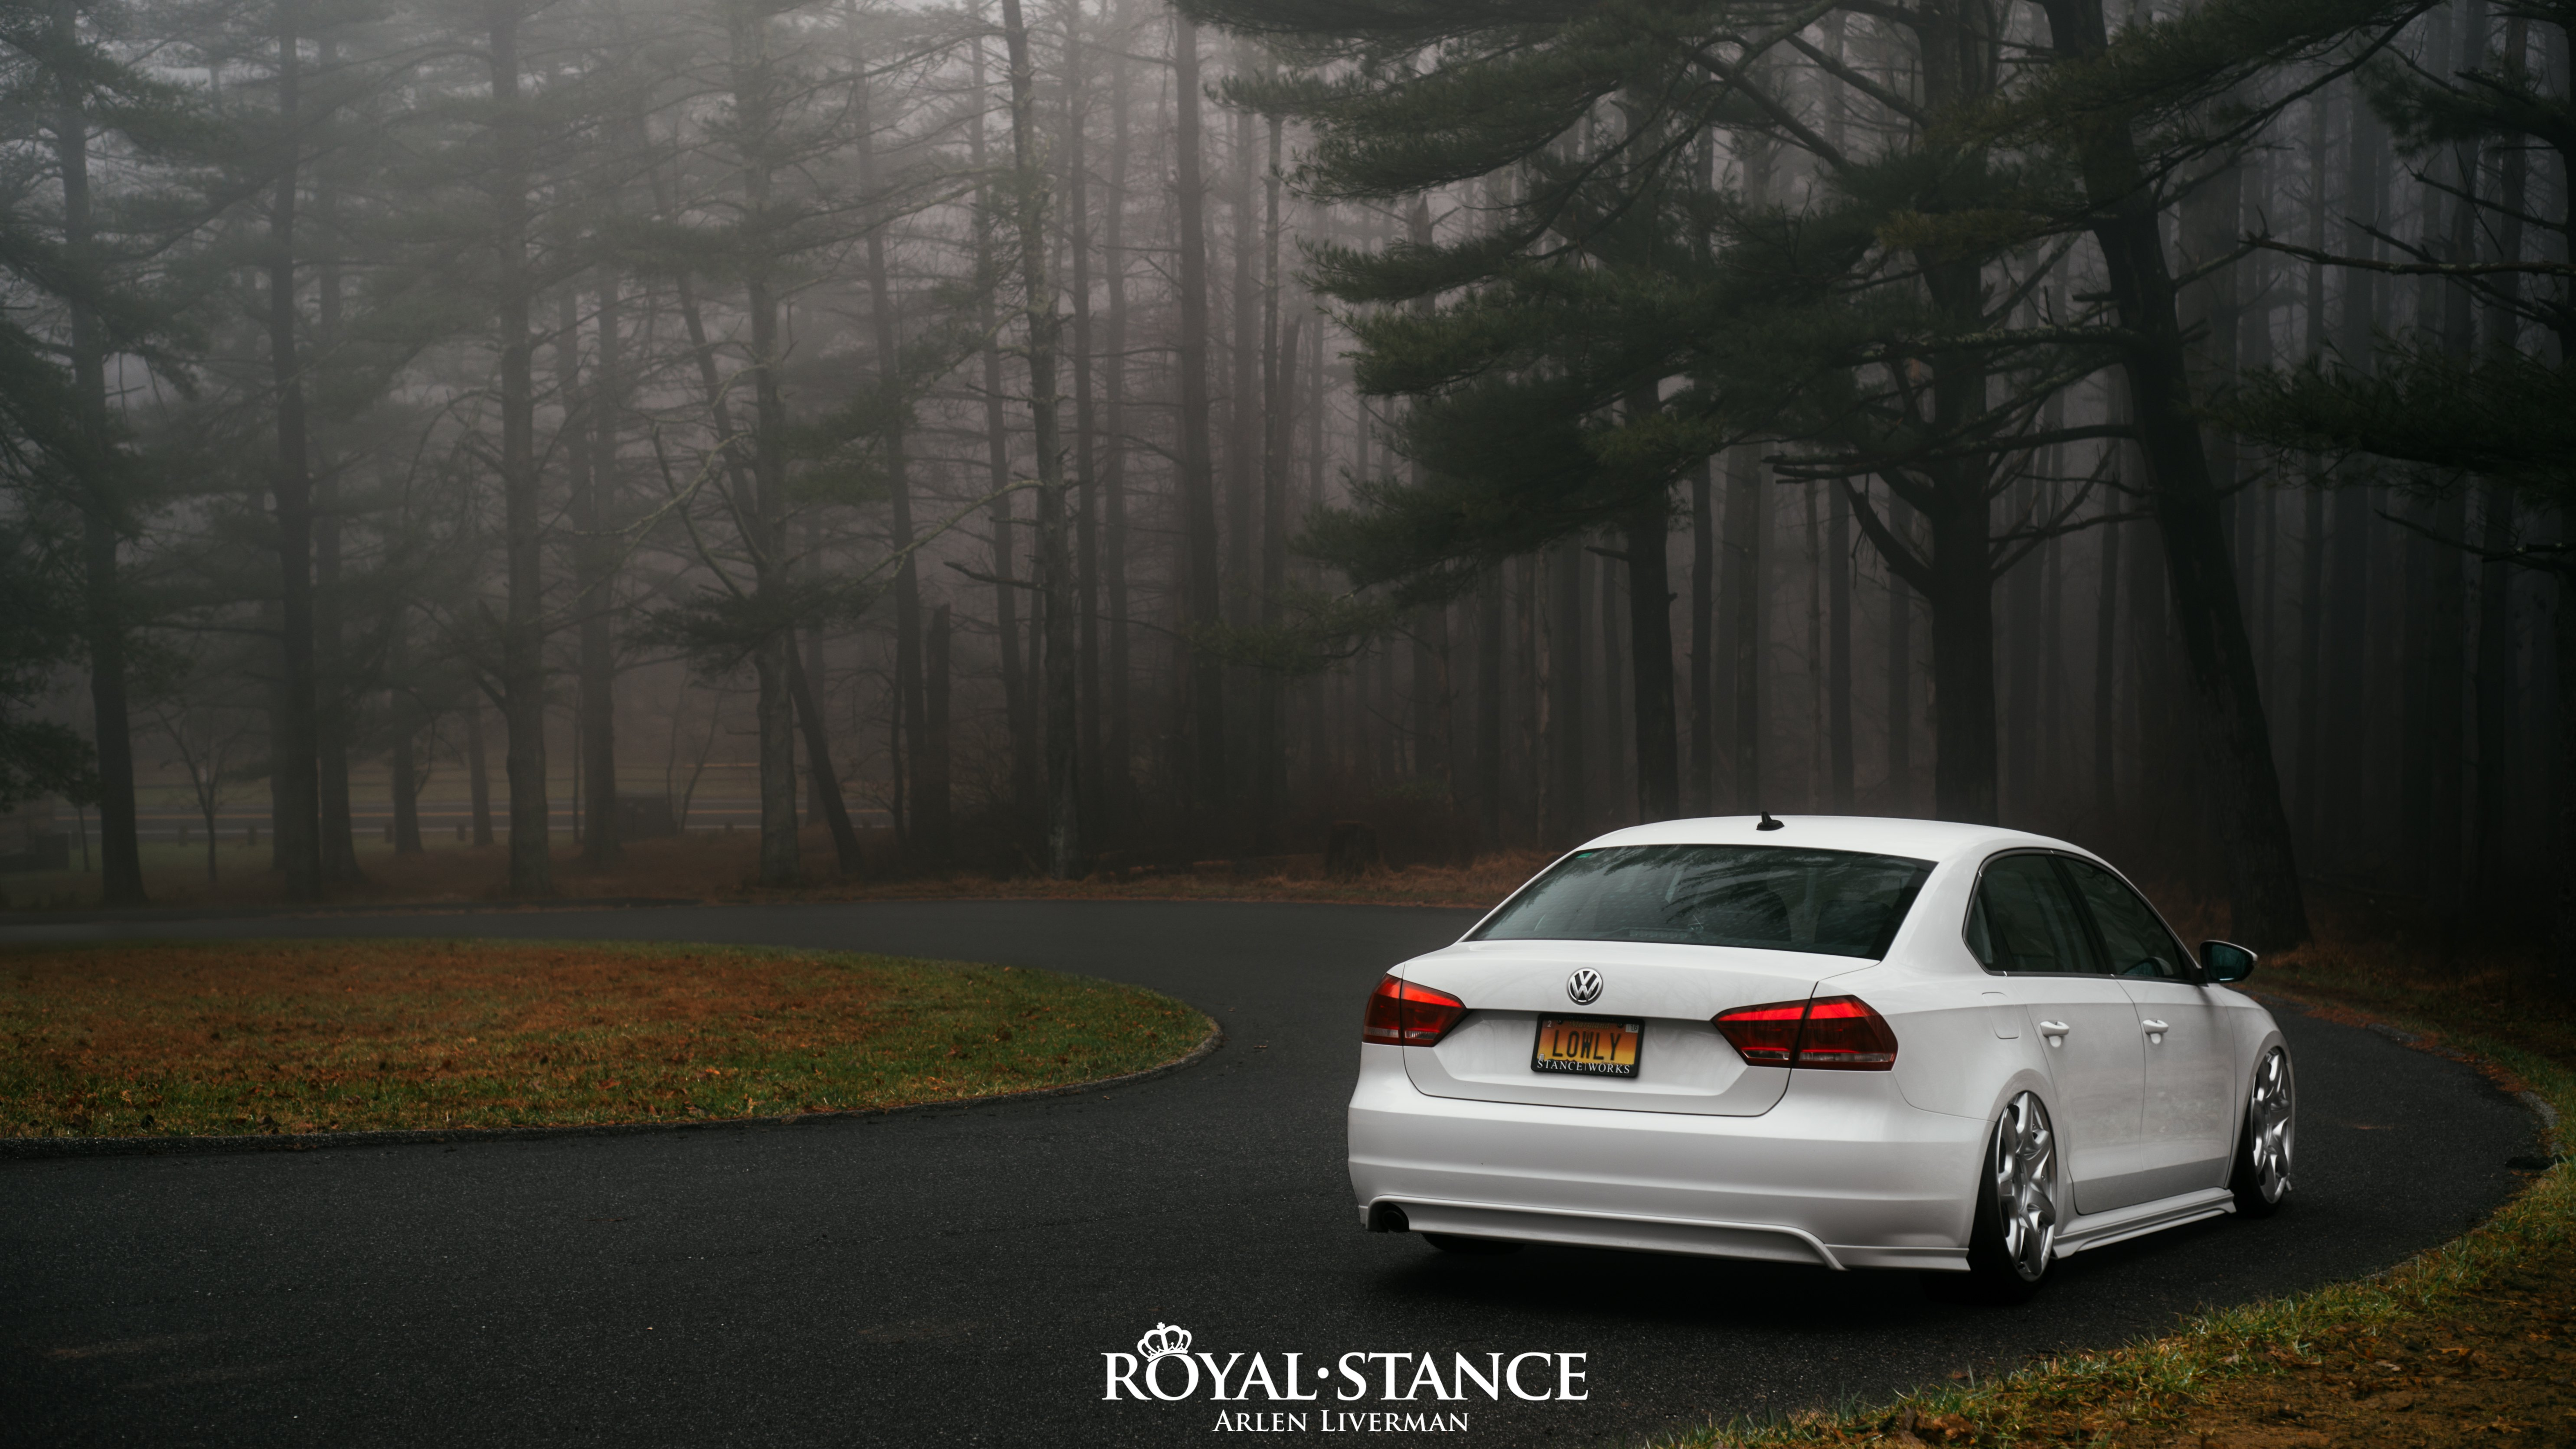 White Lowered Vw Passat Boasts A Touch Of Mystery With Aftermarket Parts Carid Com Gallery